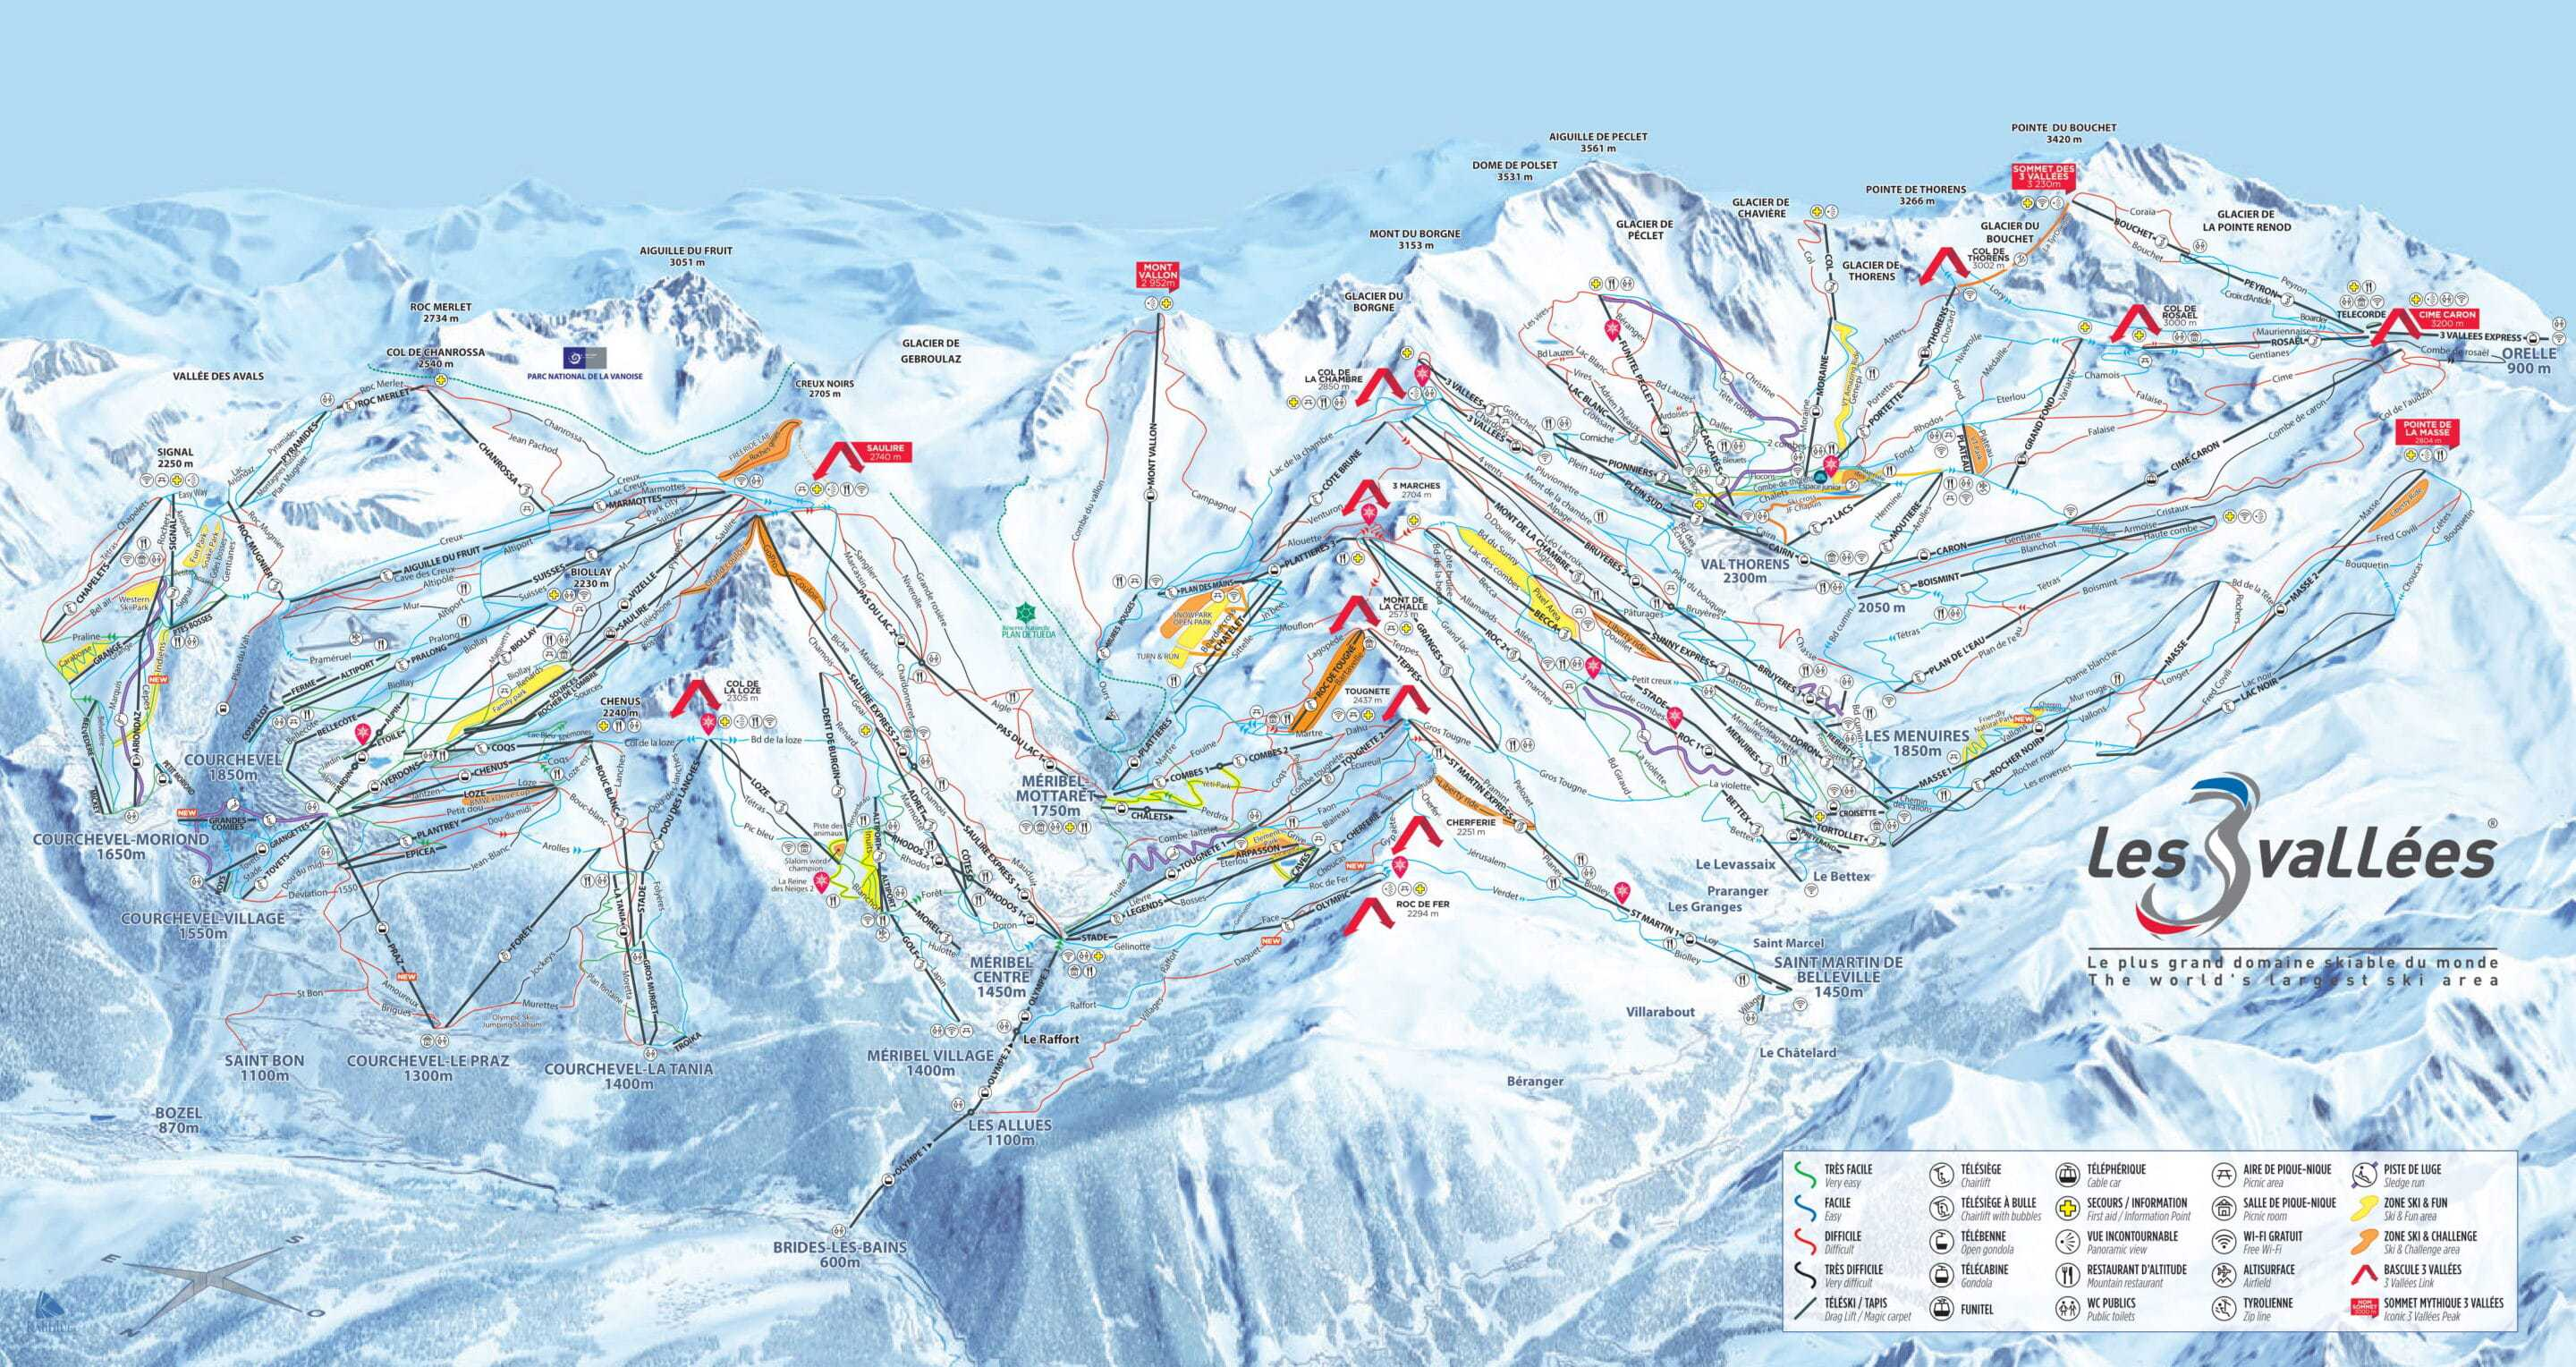 Frankrig 3 Valleys Piste Map 2020 1 scaled